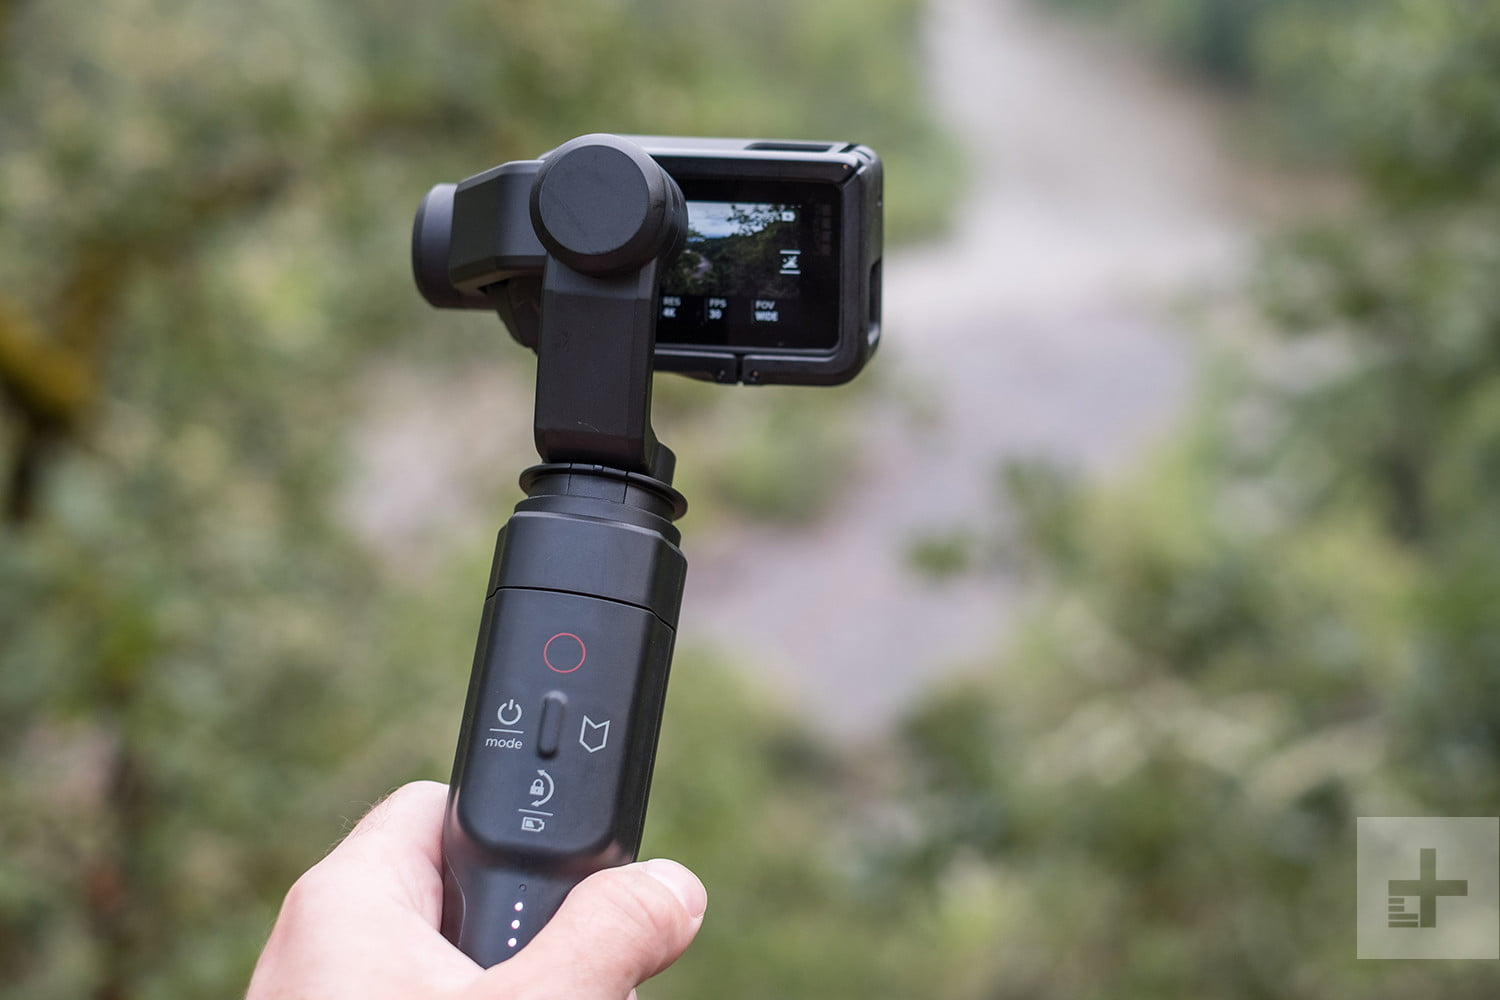 best drone for go pro with Gopro Karma Grip Review on Te al Achtergrond 272x11m Paars also Top 10 Most Expensive Drones further Gopro Karma Grip Review as well The Hubsan X4 Pro Review together with Quadcopter Wallpaper.